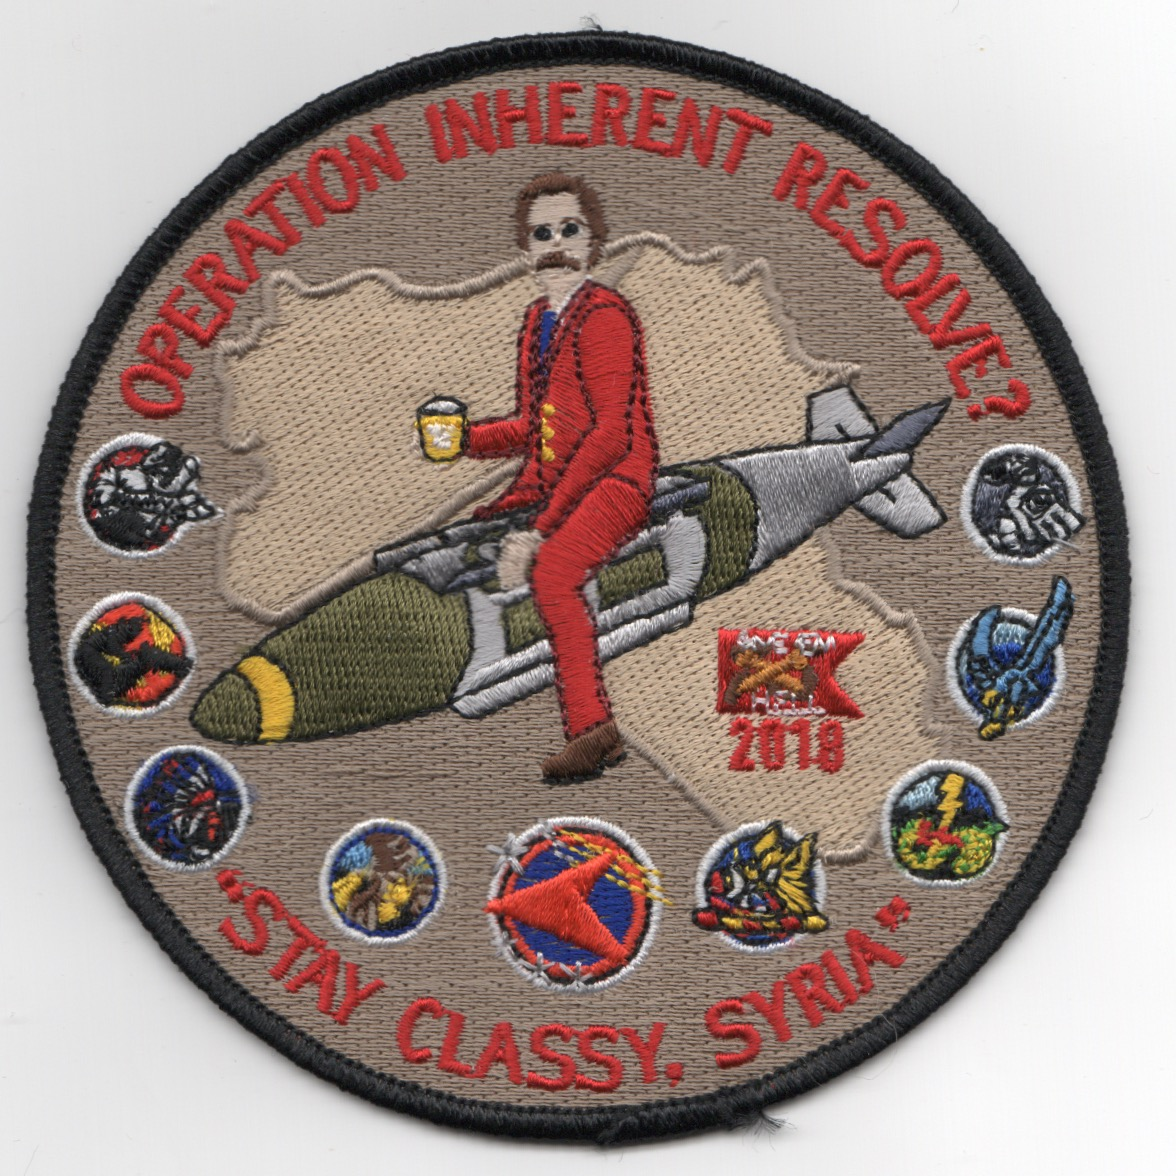 VFA-81 2018 OIR 'STAY CLASSY' Cruise Patch